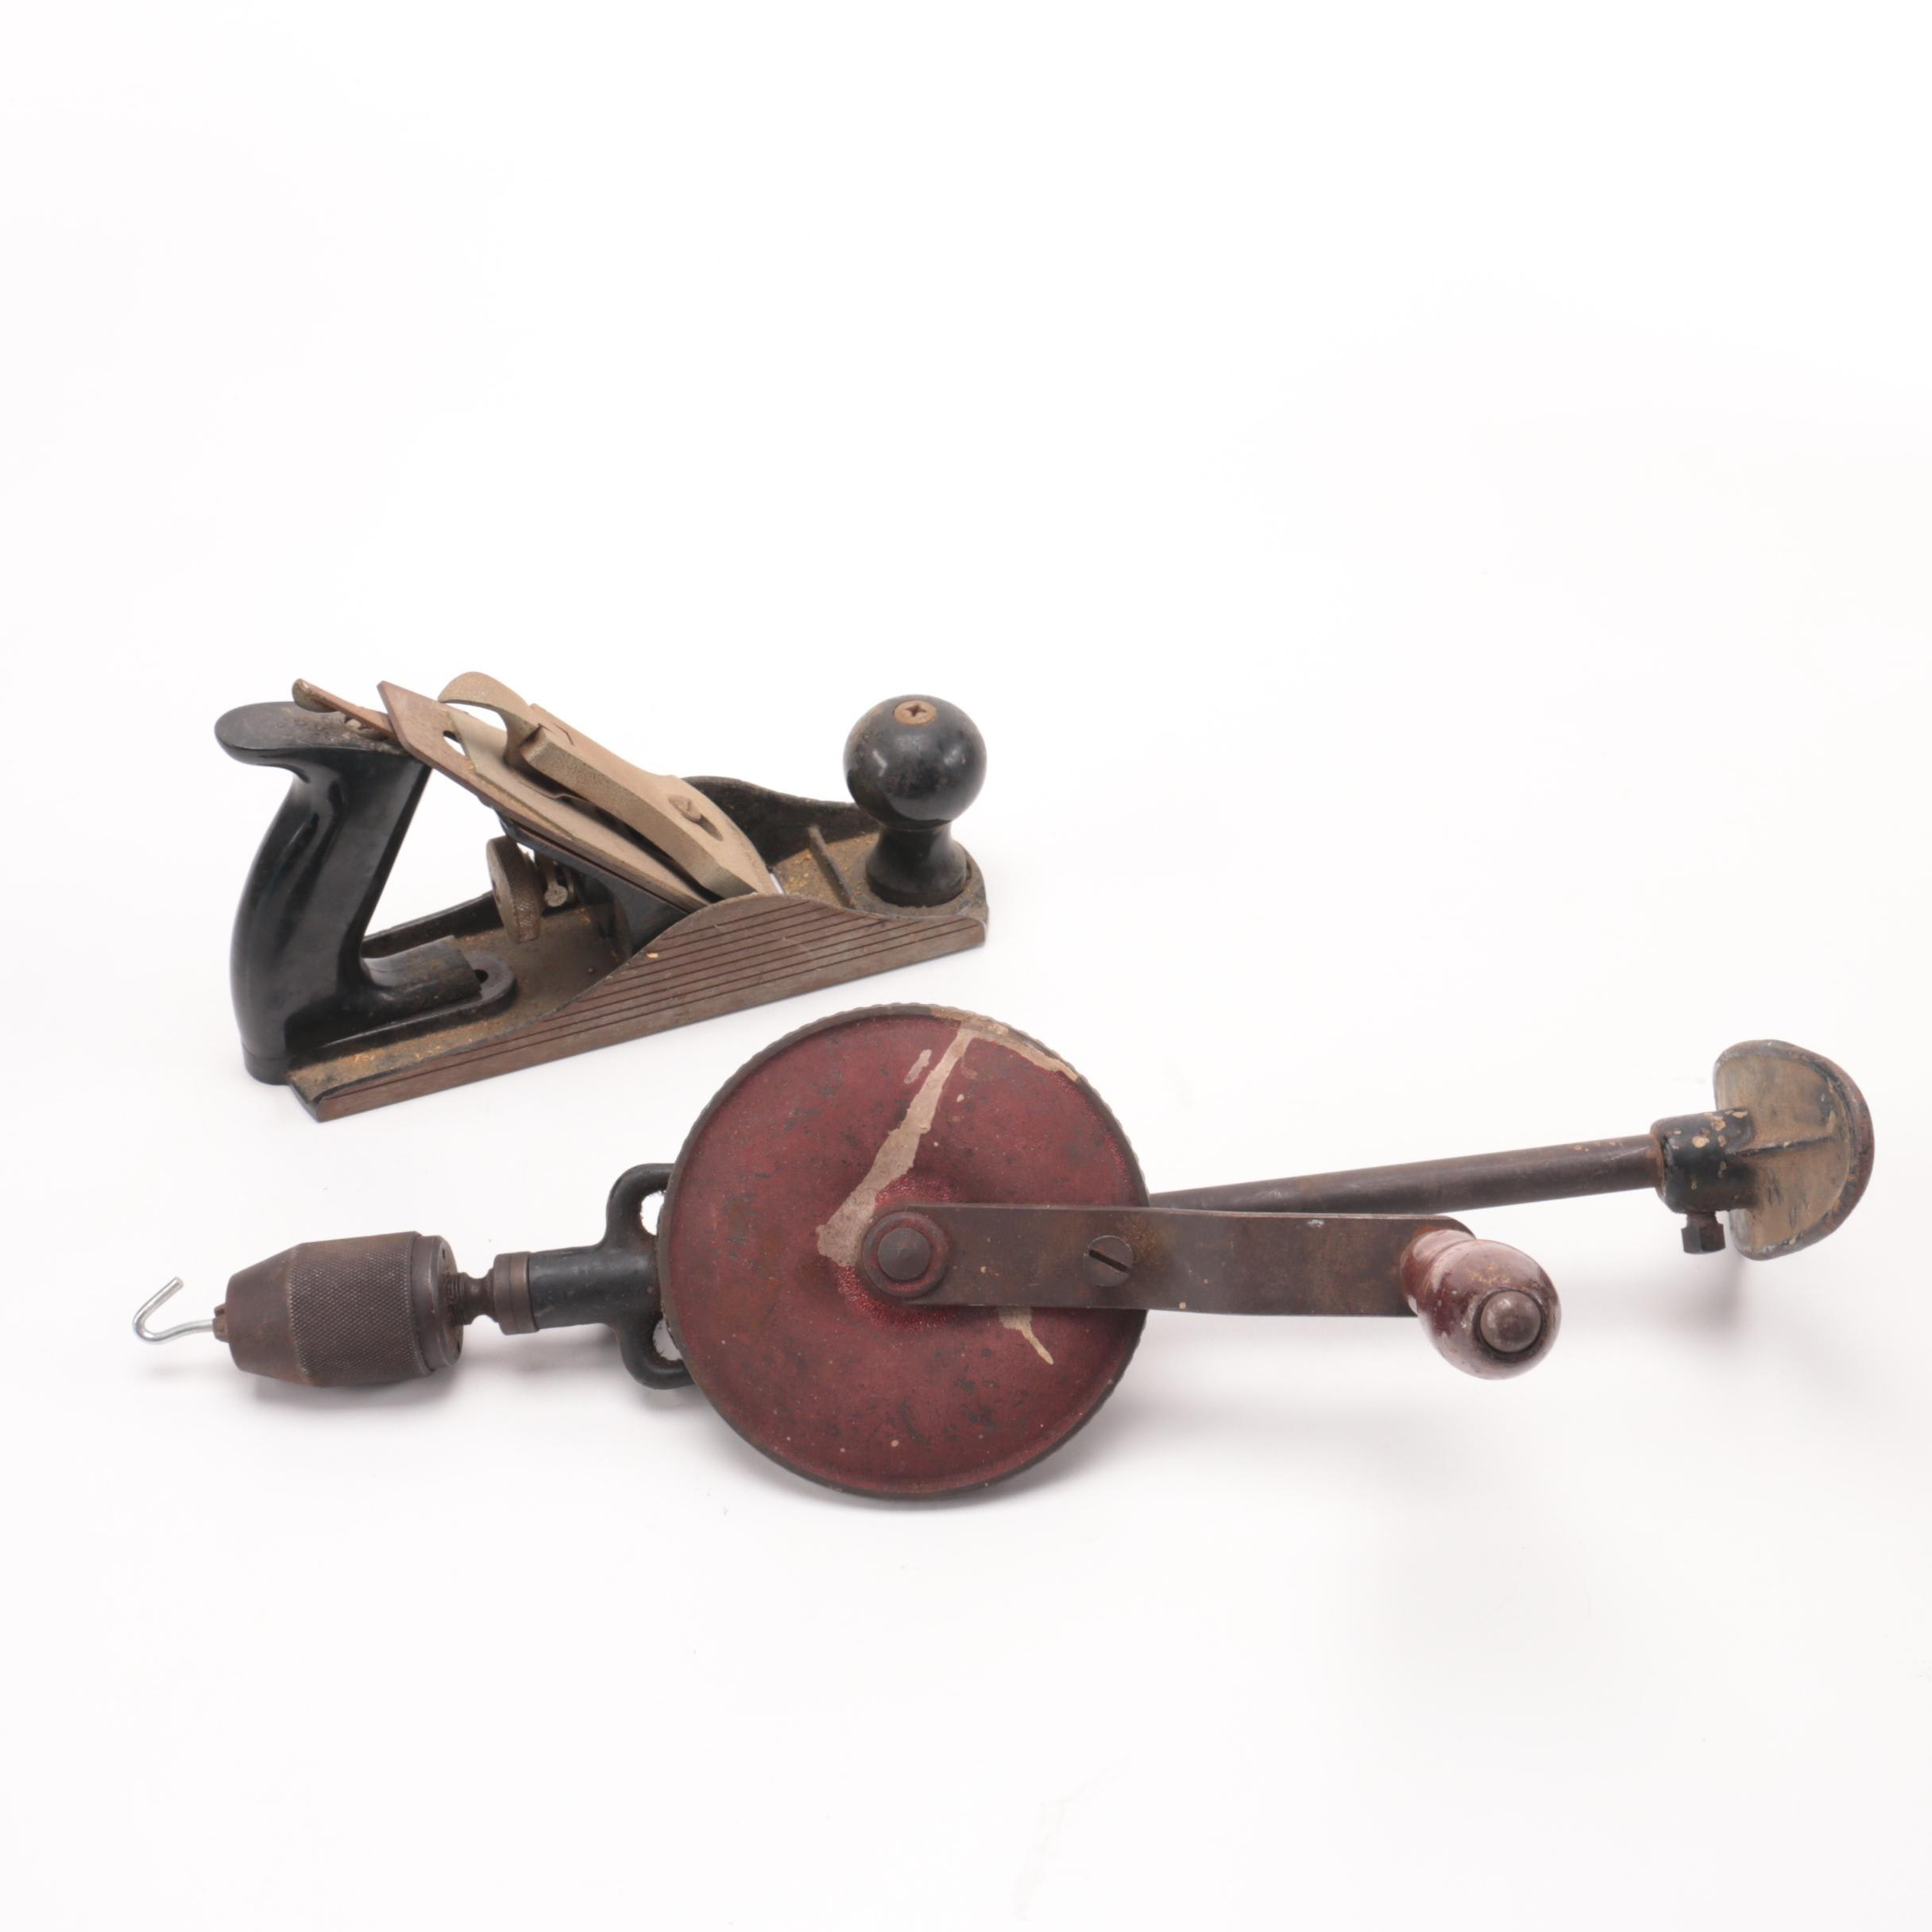 Vintage Craftsman Wood Plane and Hand Drill